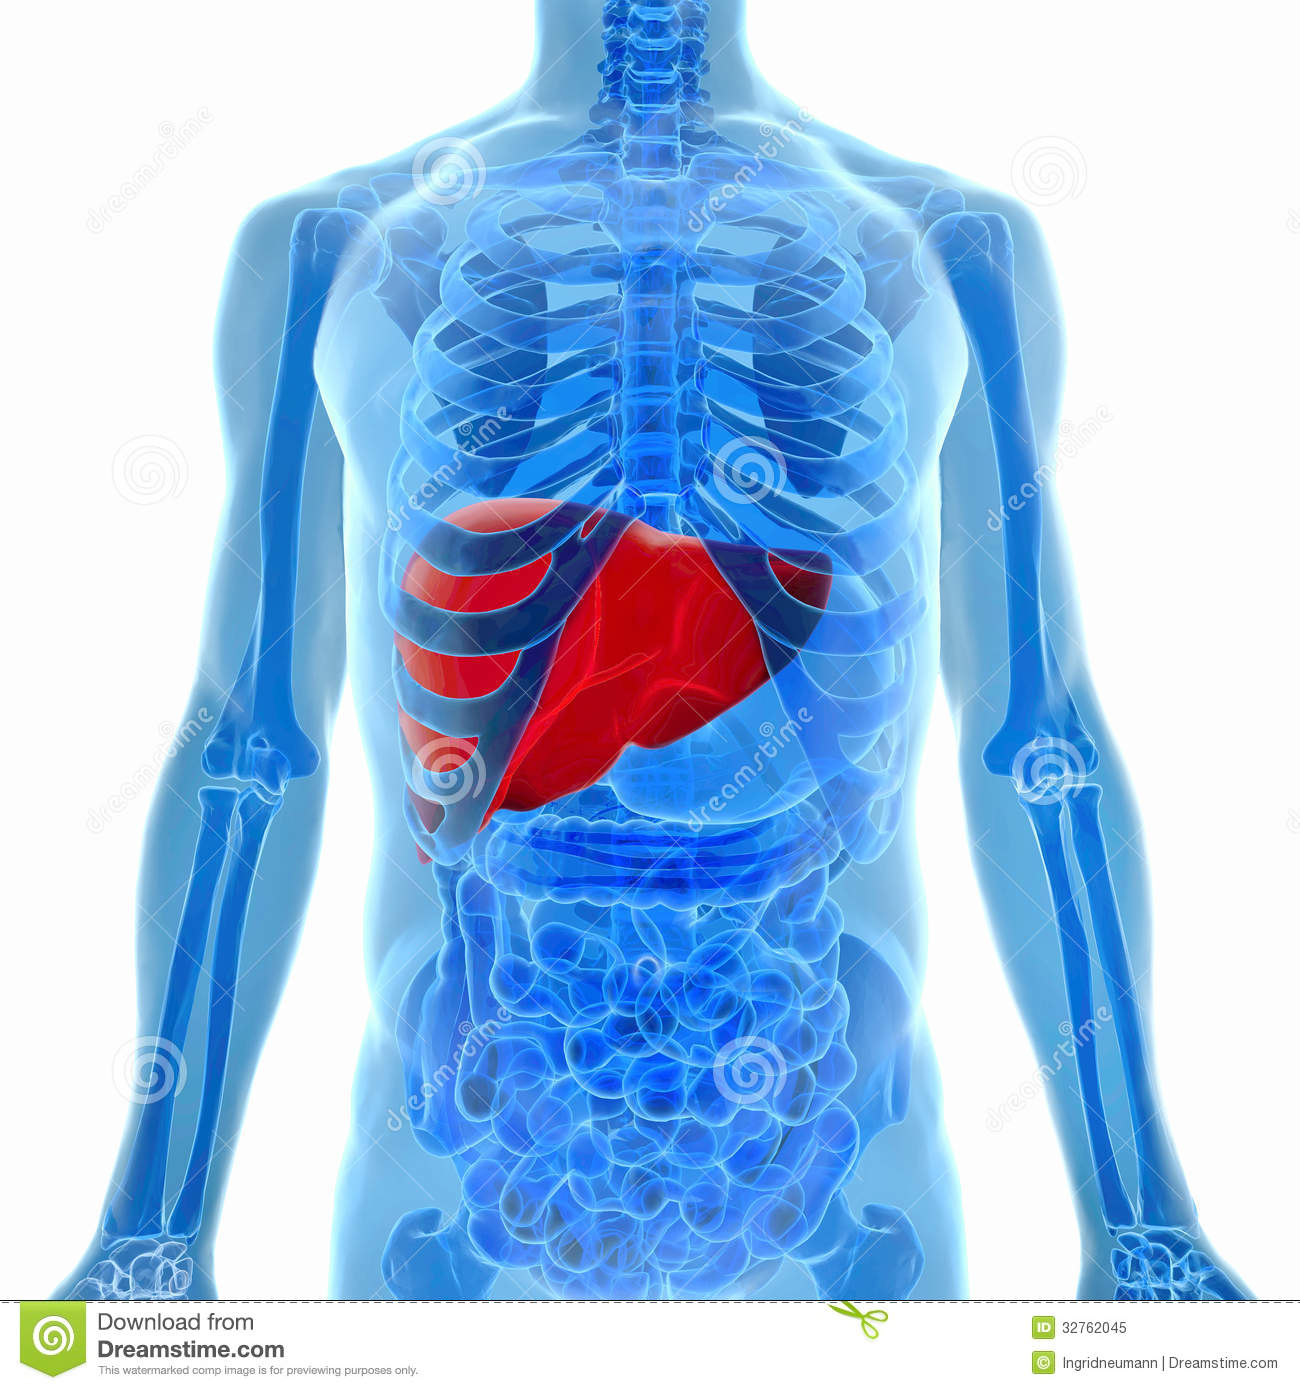 Anatomy Of Human Liver In X Ray View Stock Illustration